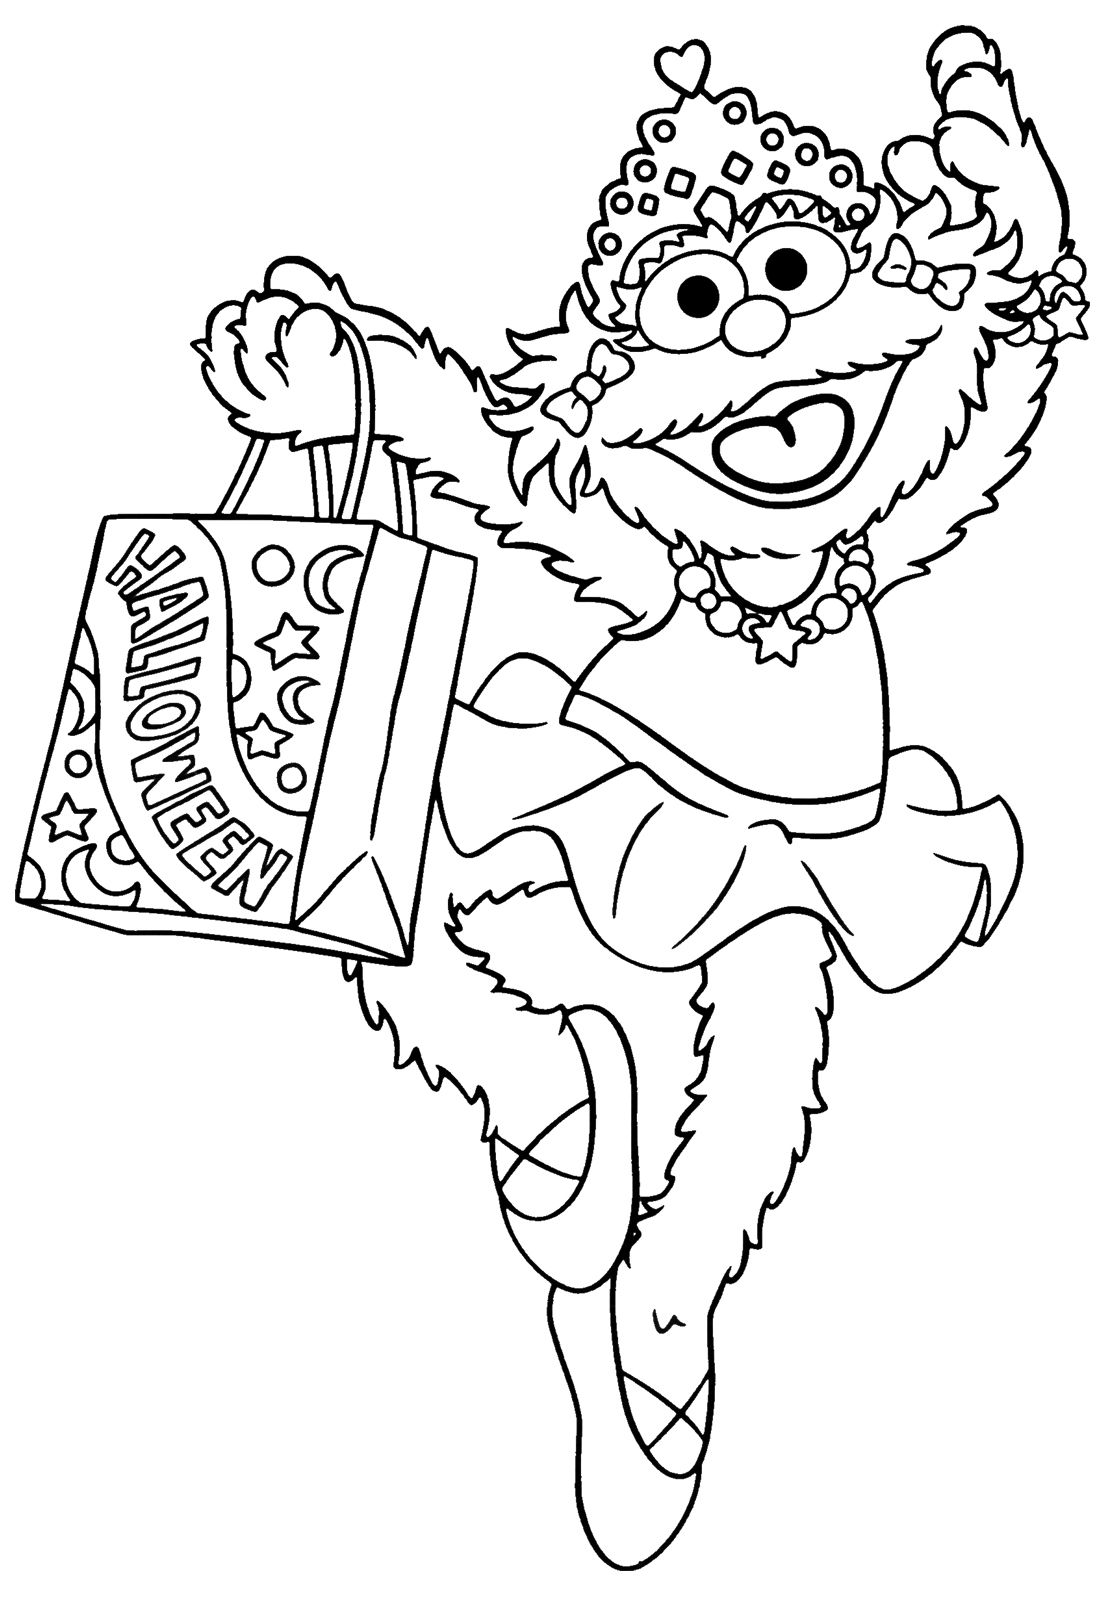 Sesame Street Sports Coloring Pages